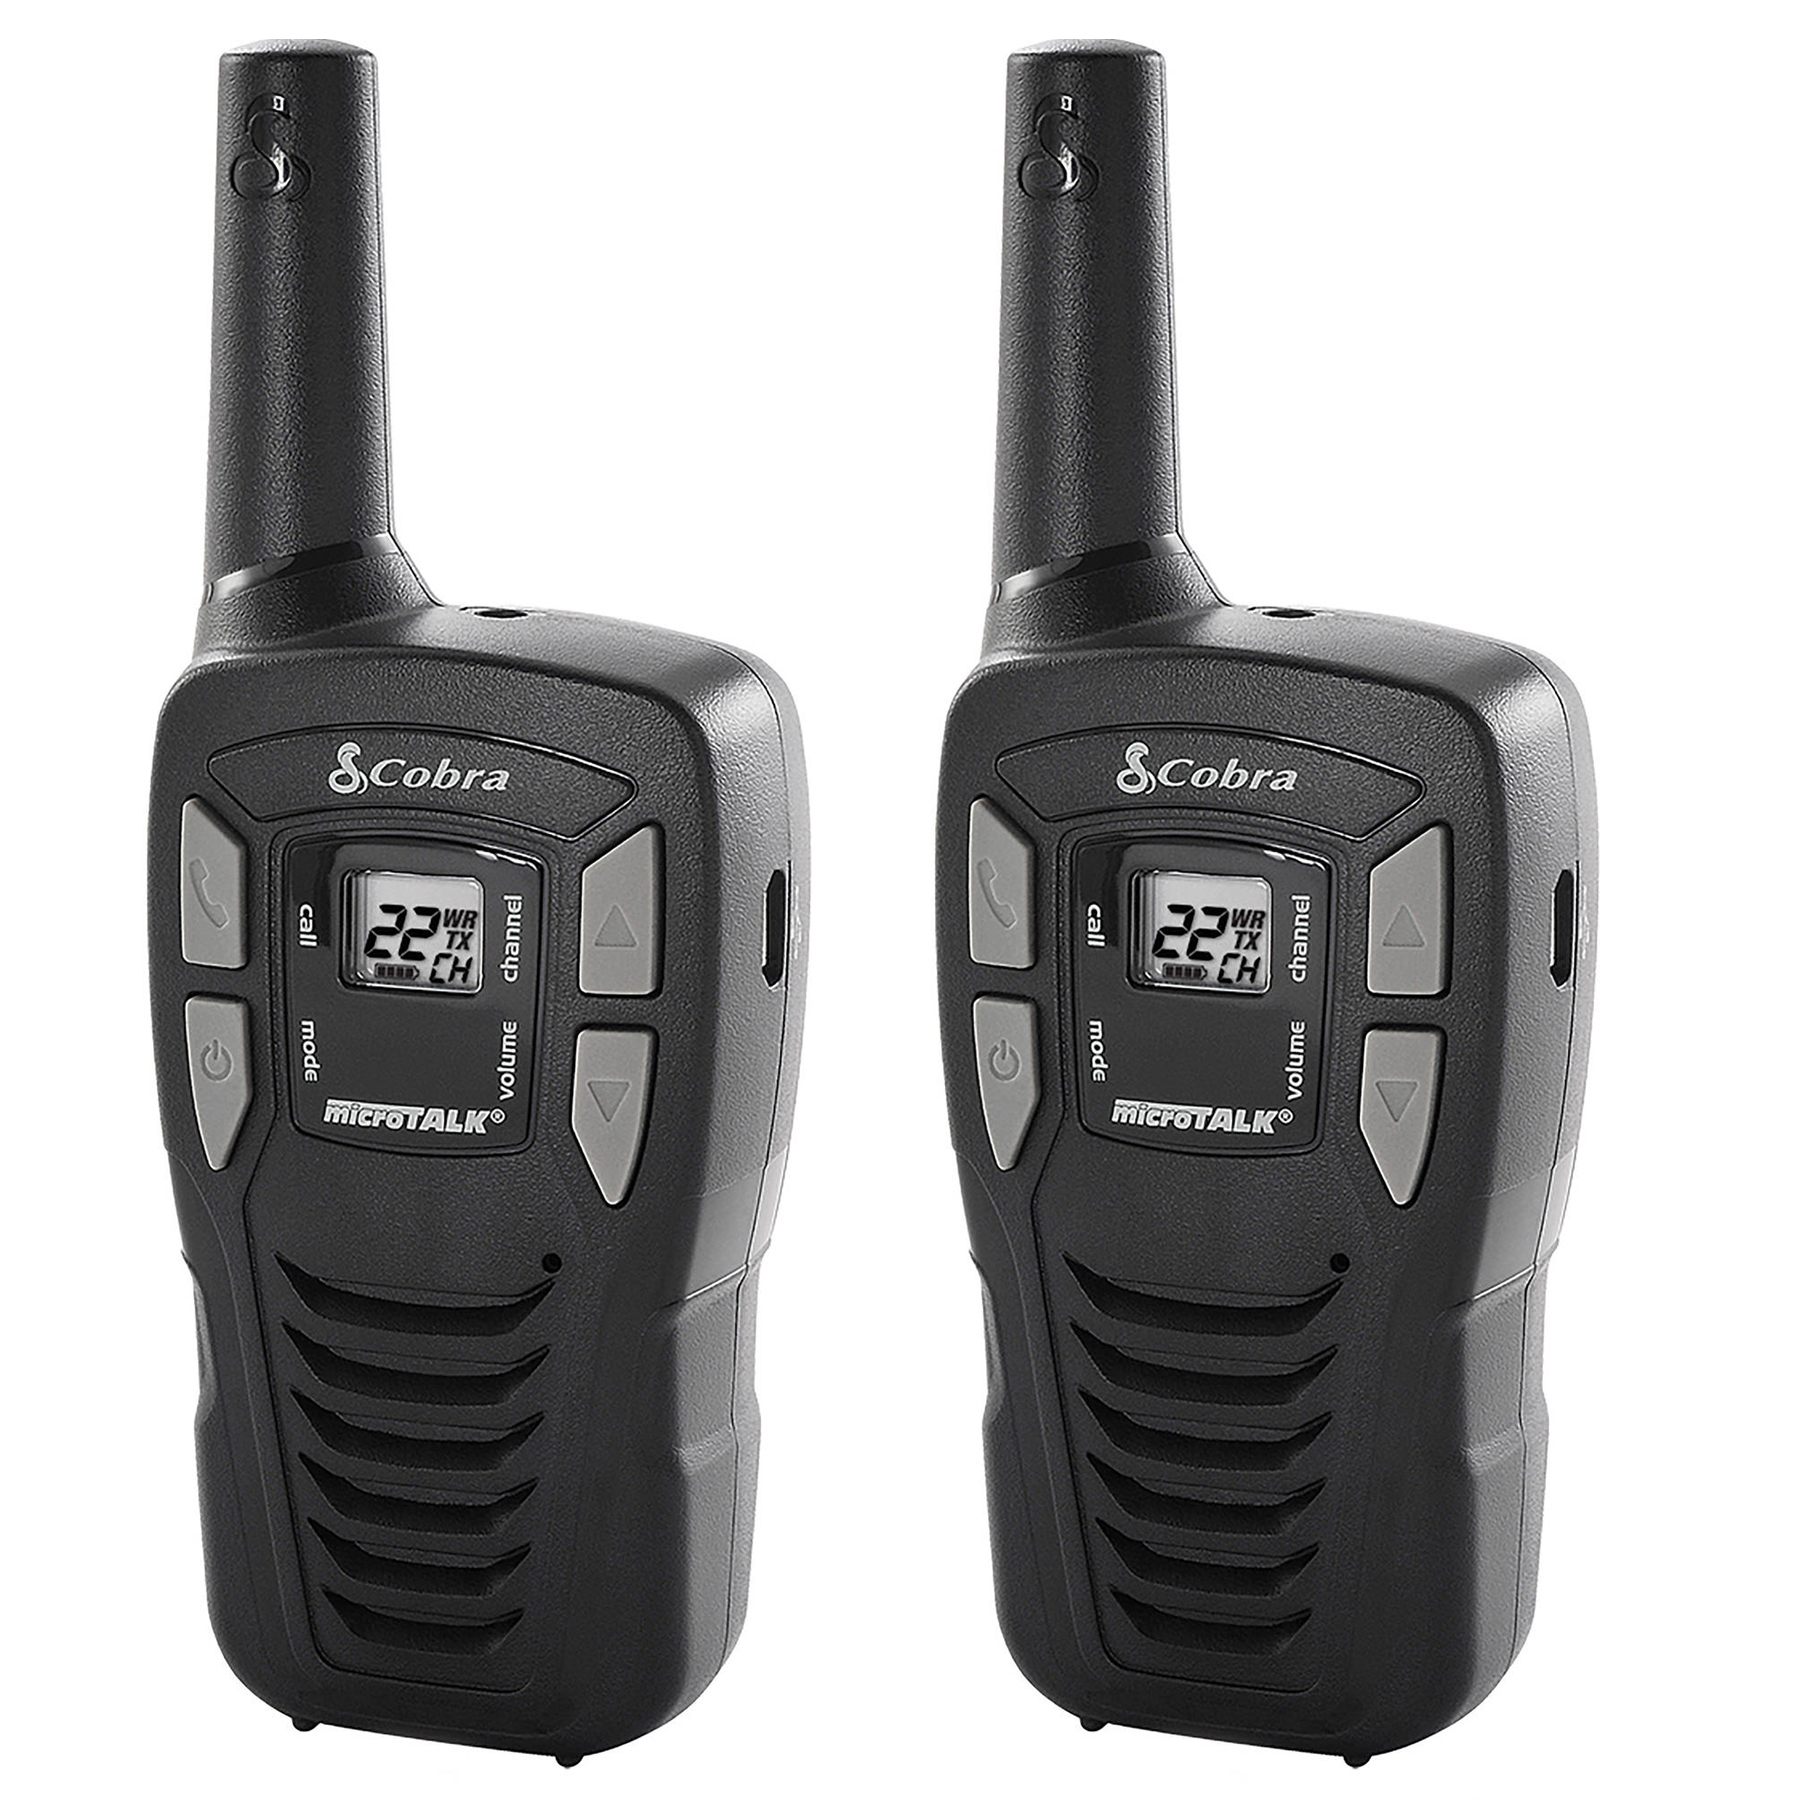 Cobra Cxt195 16-Mile 2-Way Radios Walkie Talkies, 2-Pack by Cobra